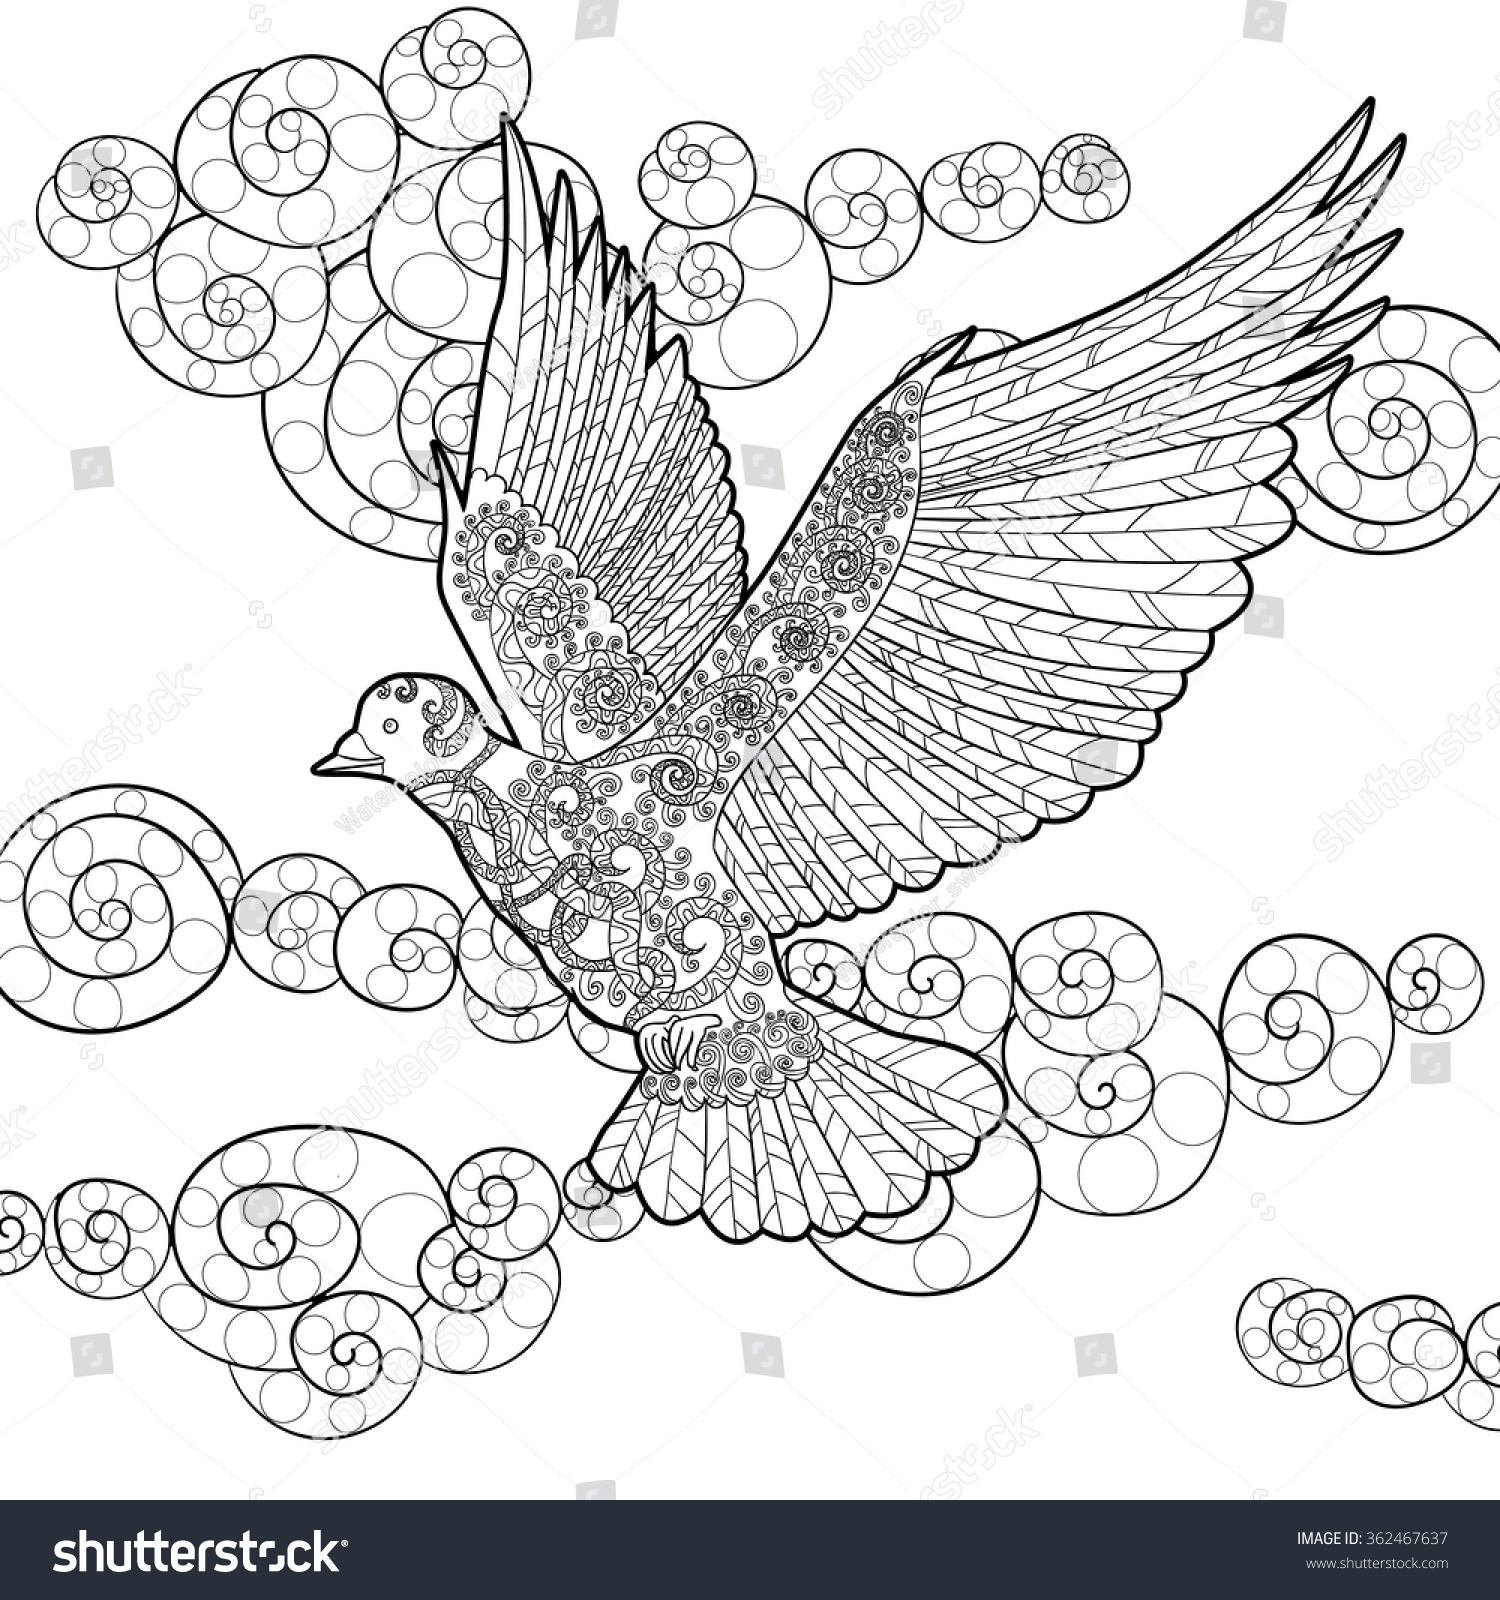 flying dove with high details adult antistress coloring page